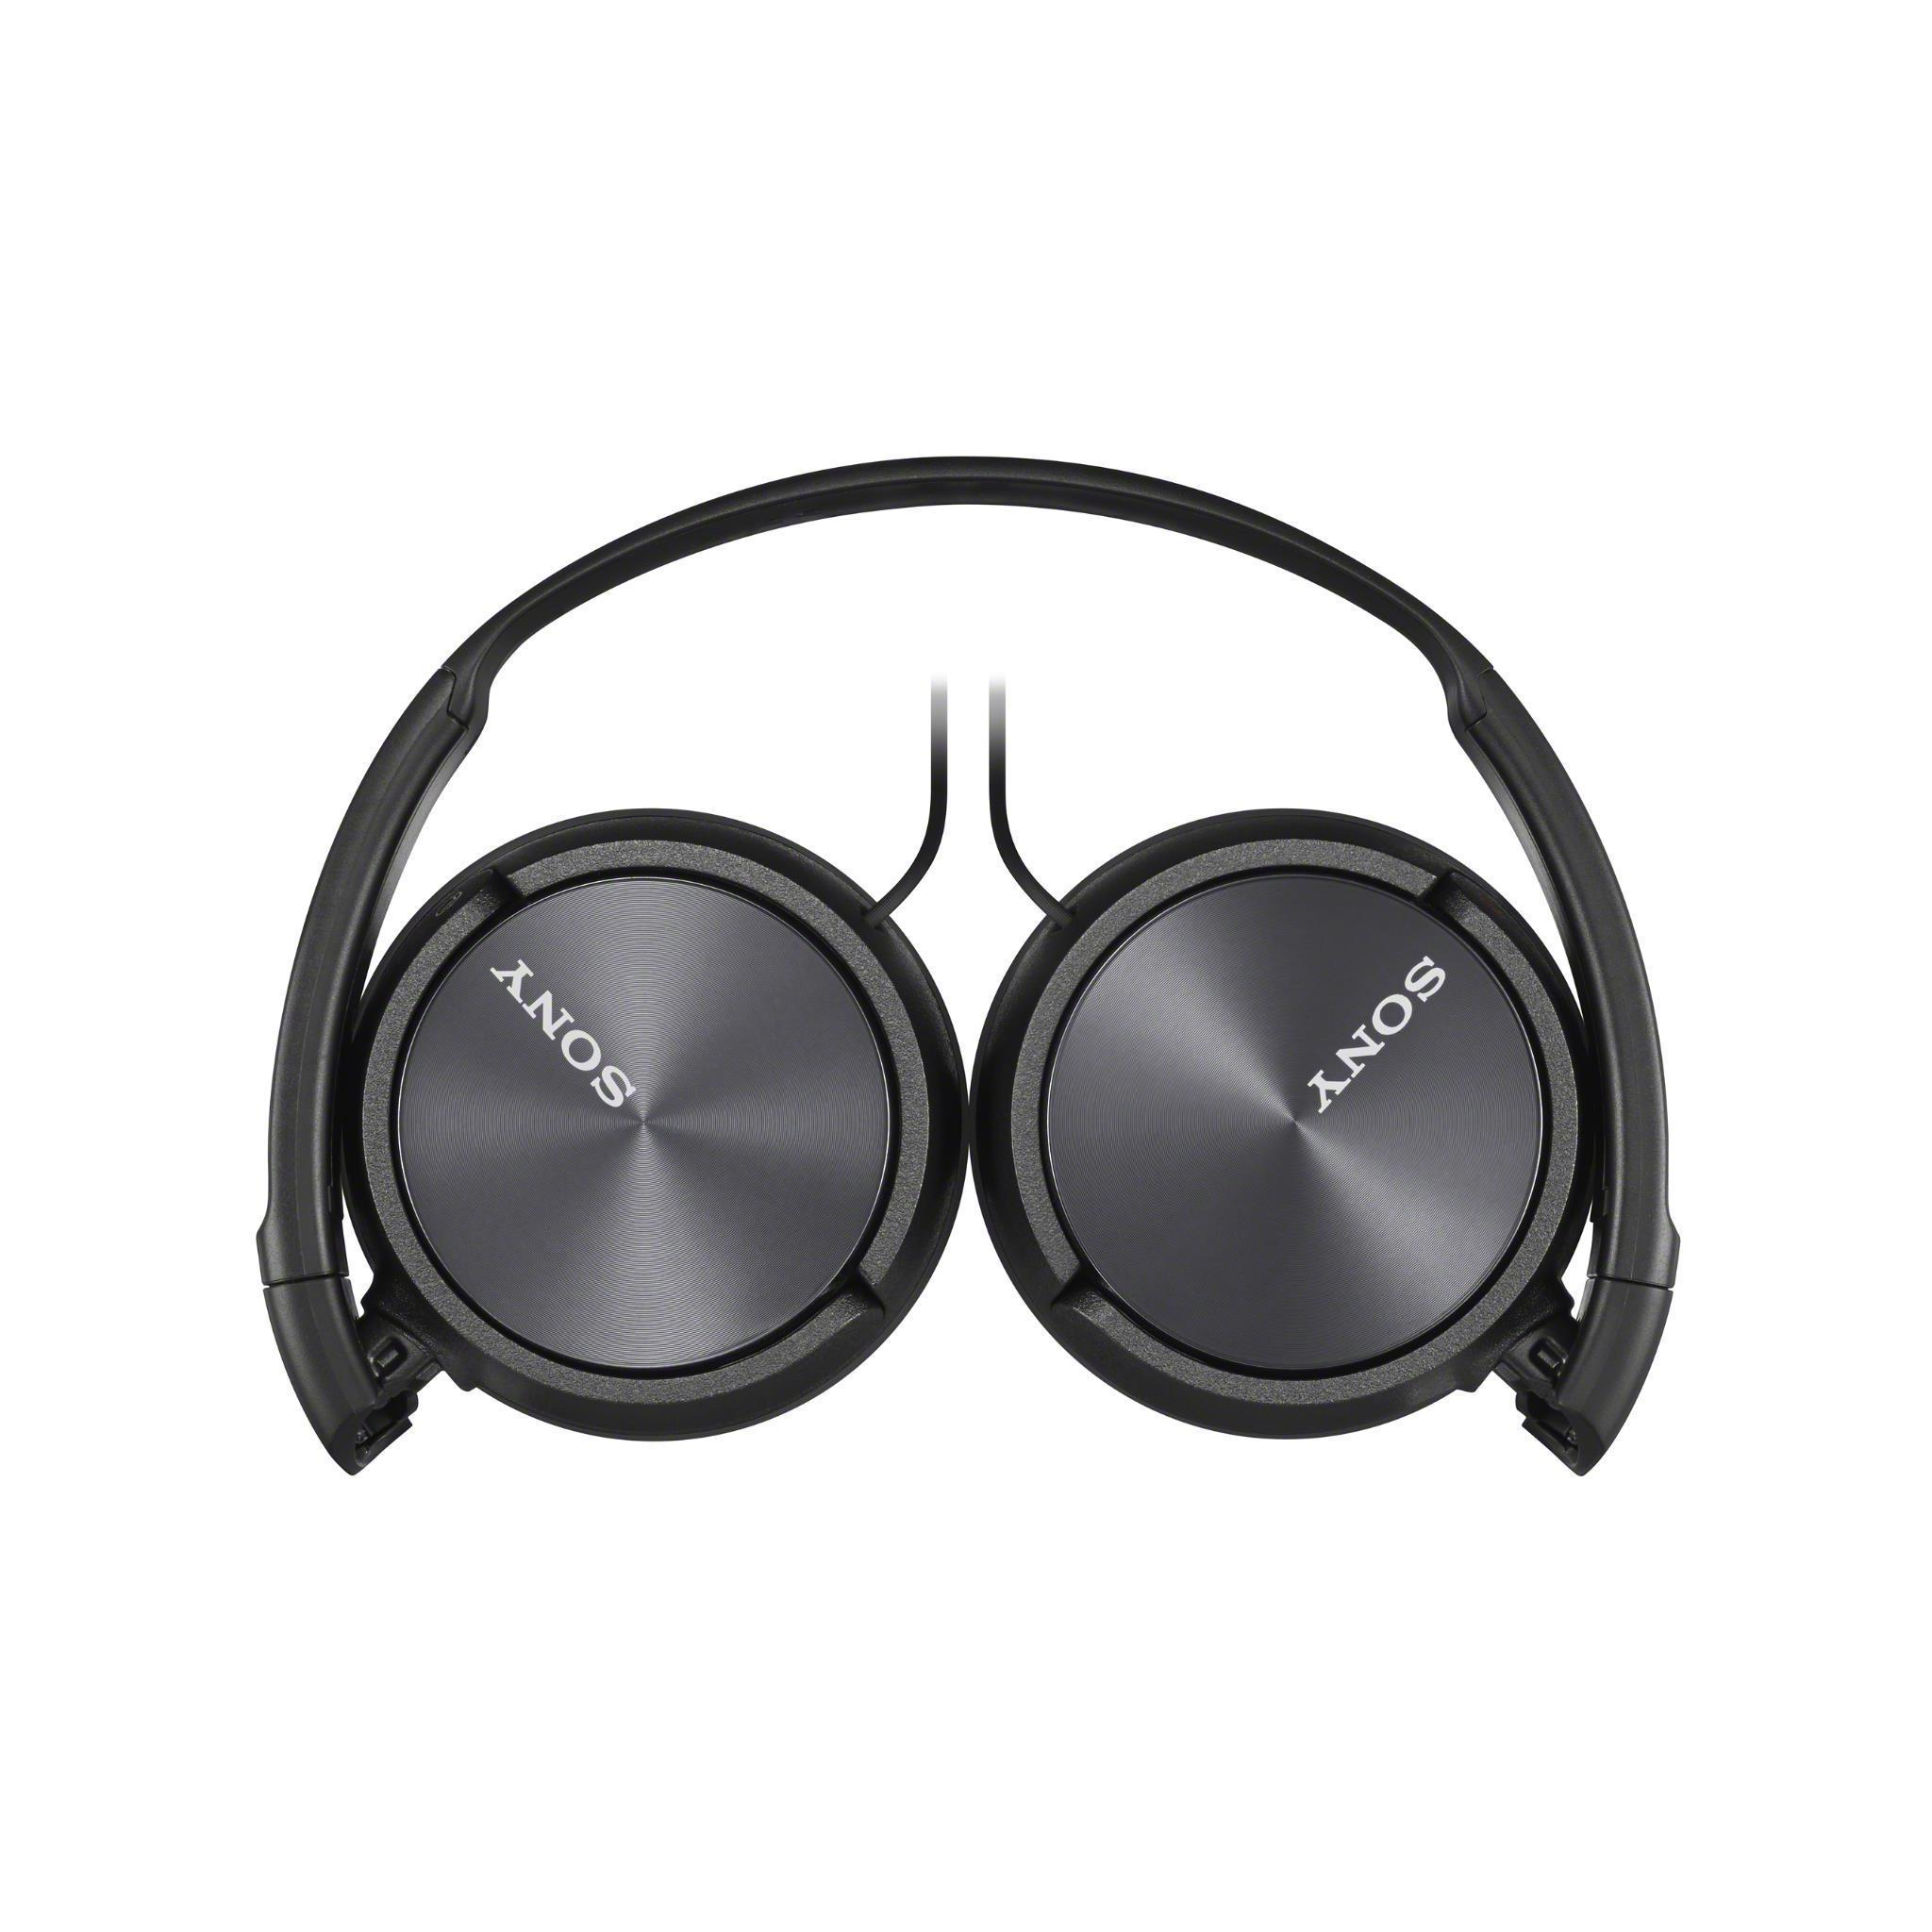 Sony ZX310 Sound Monitoring Over-Ear Headphones (Black)